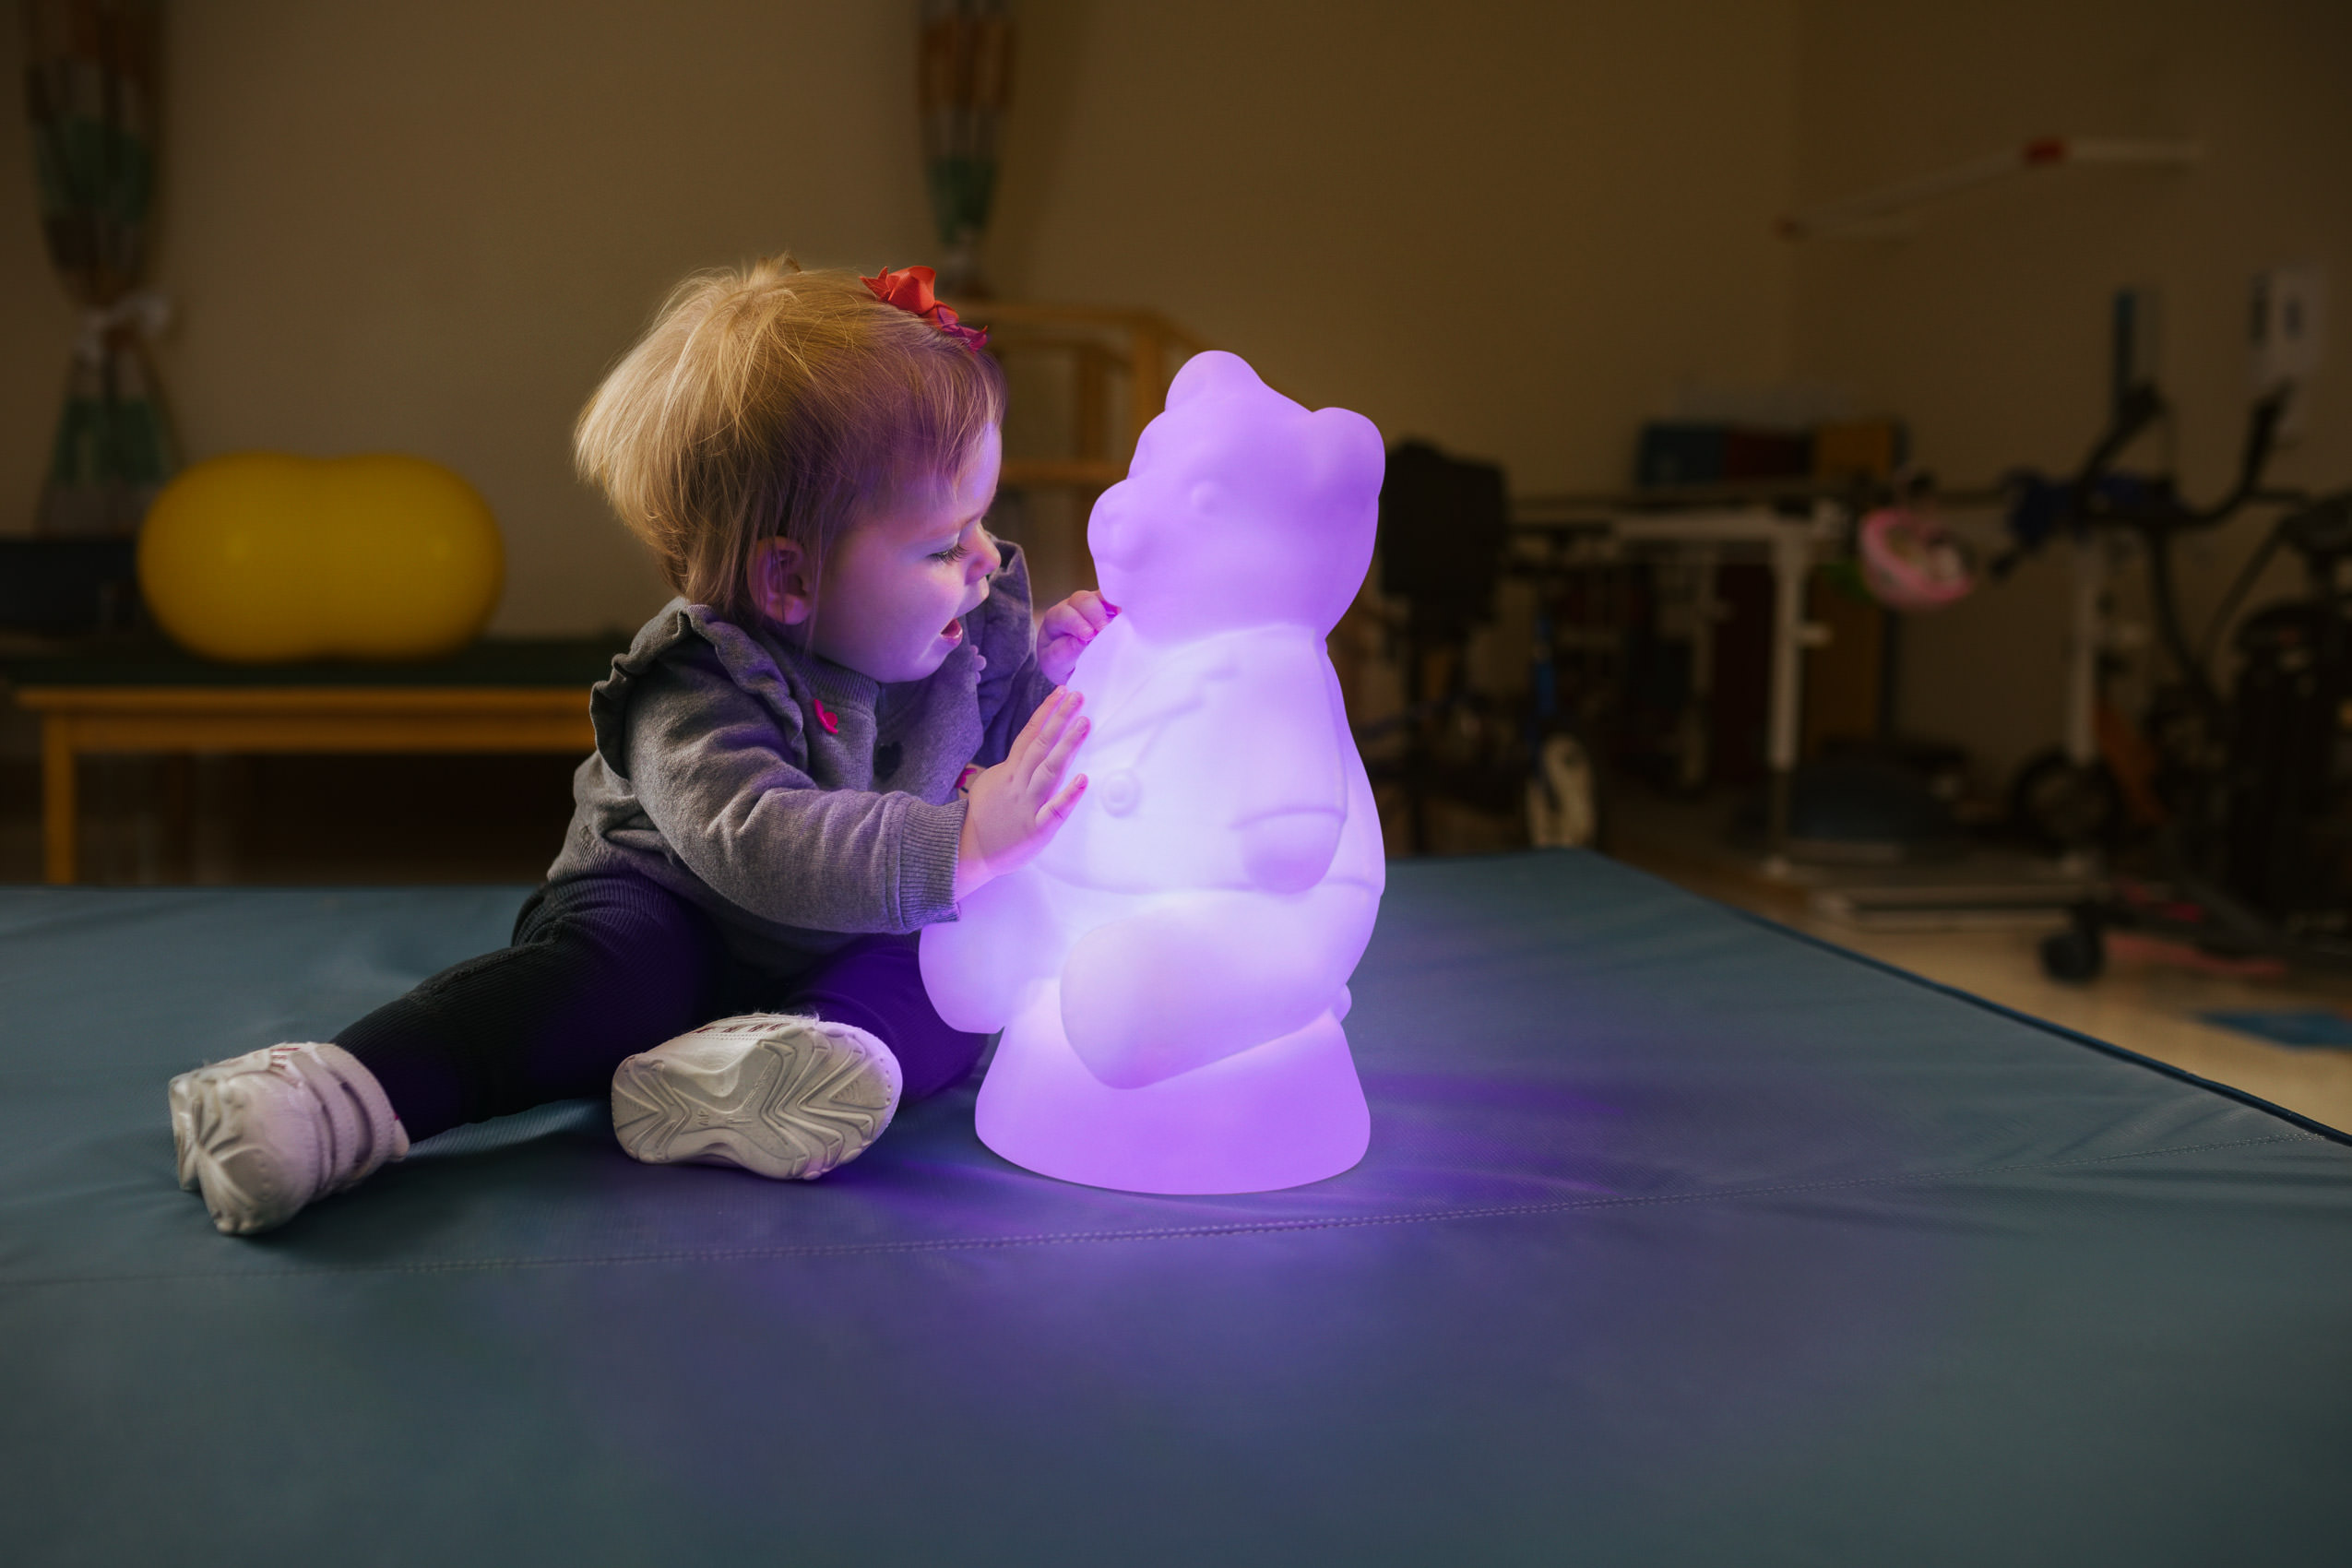 toddler with purple glowing bear in pt room for washington dc healthcare photography